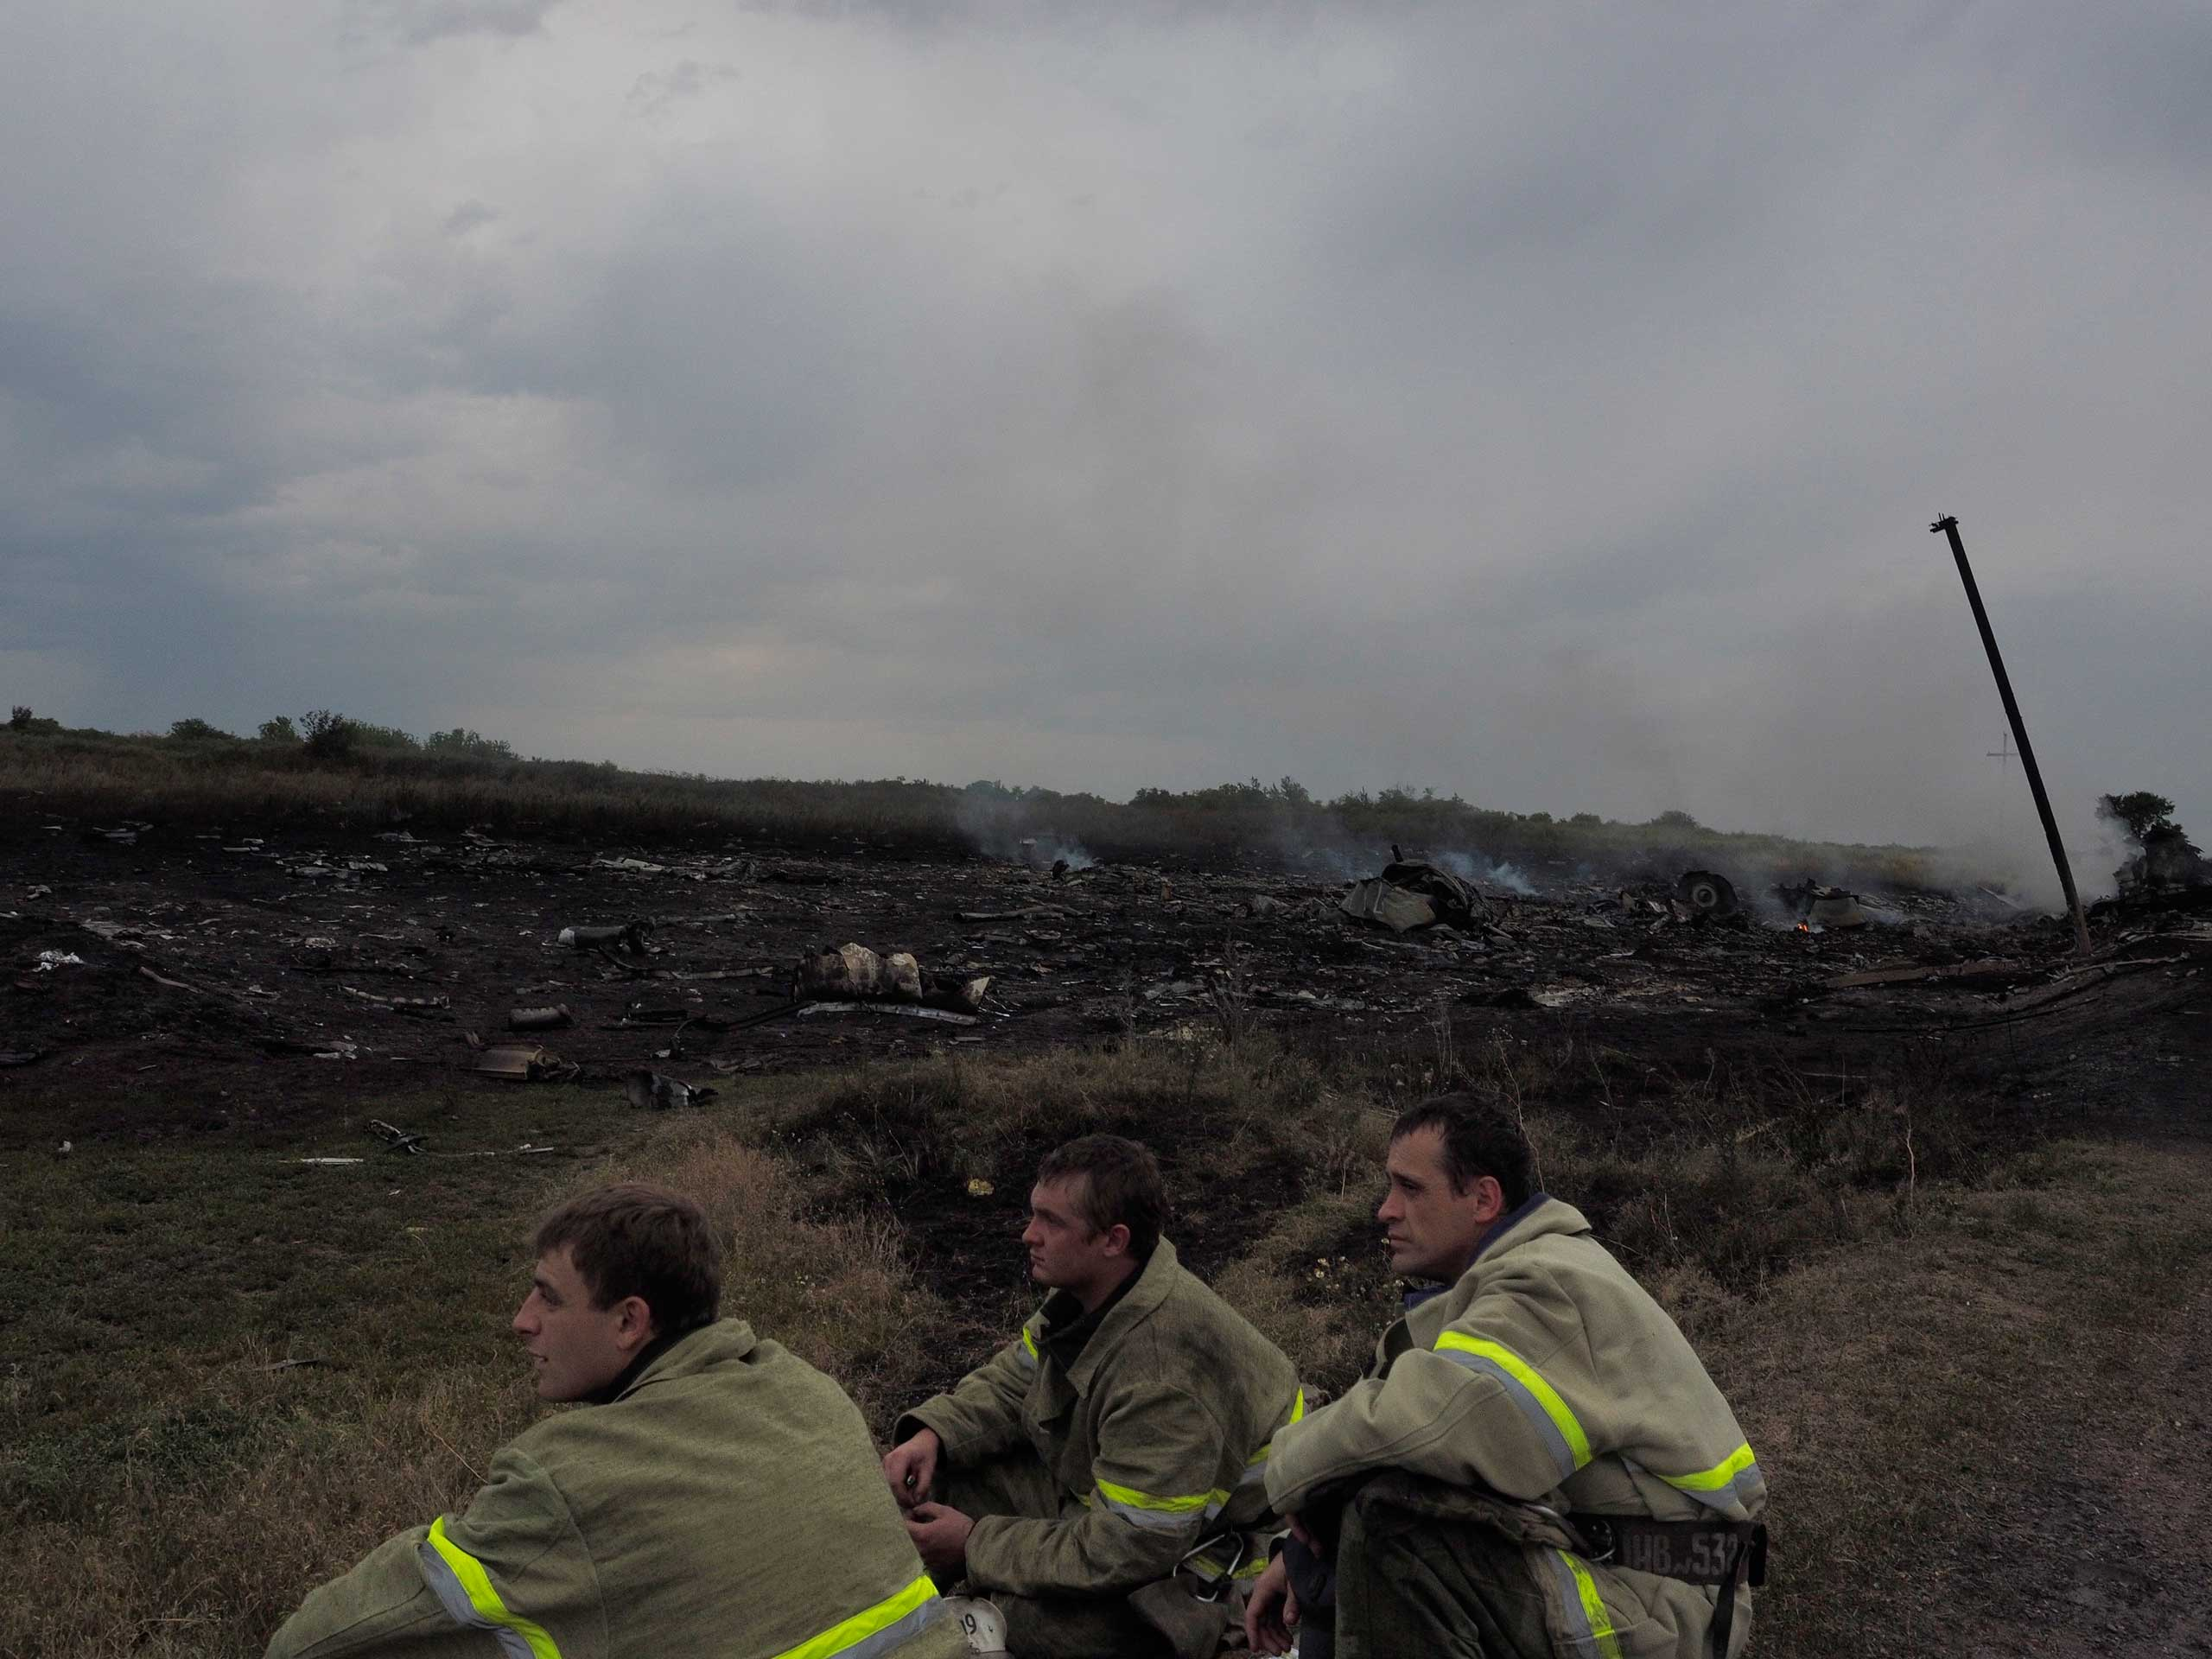 Firefighters at the crash site of Malaysia Airlines flight MH17 in Torez, eastern Ukraine, July 17, 2014.